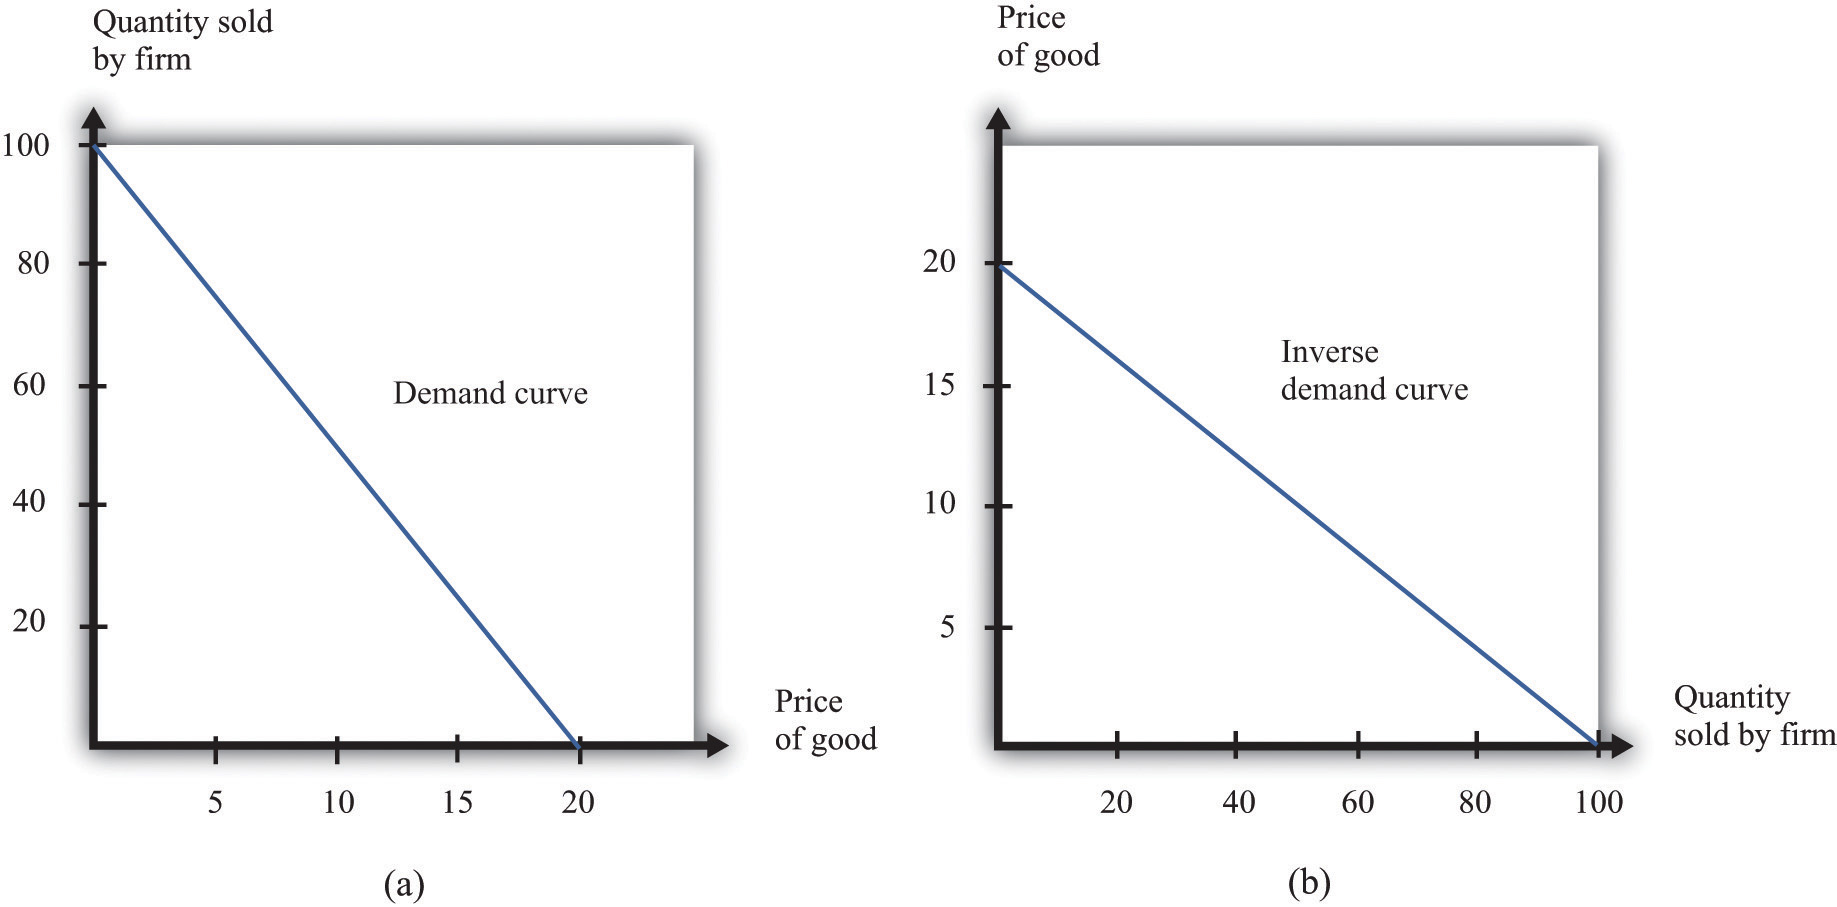 Demand Curve For Food a The Demand Curve Has Price